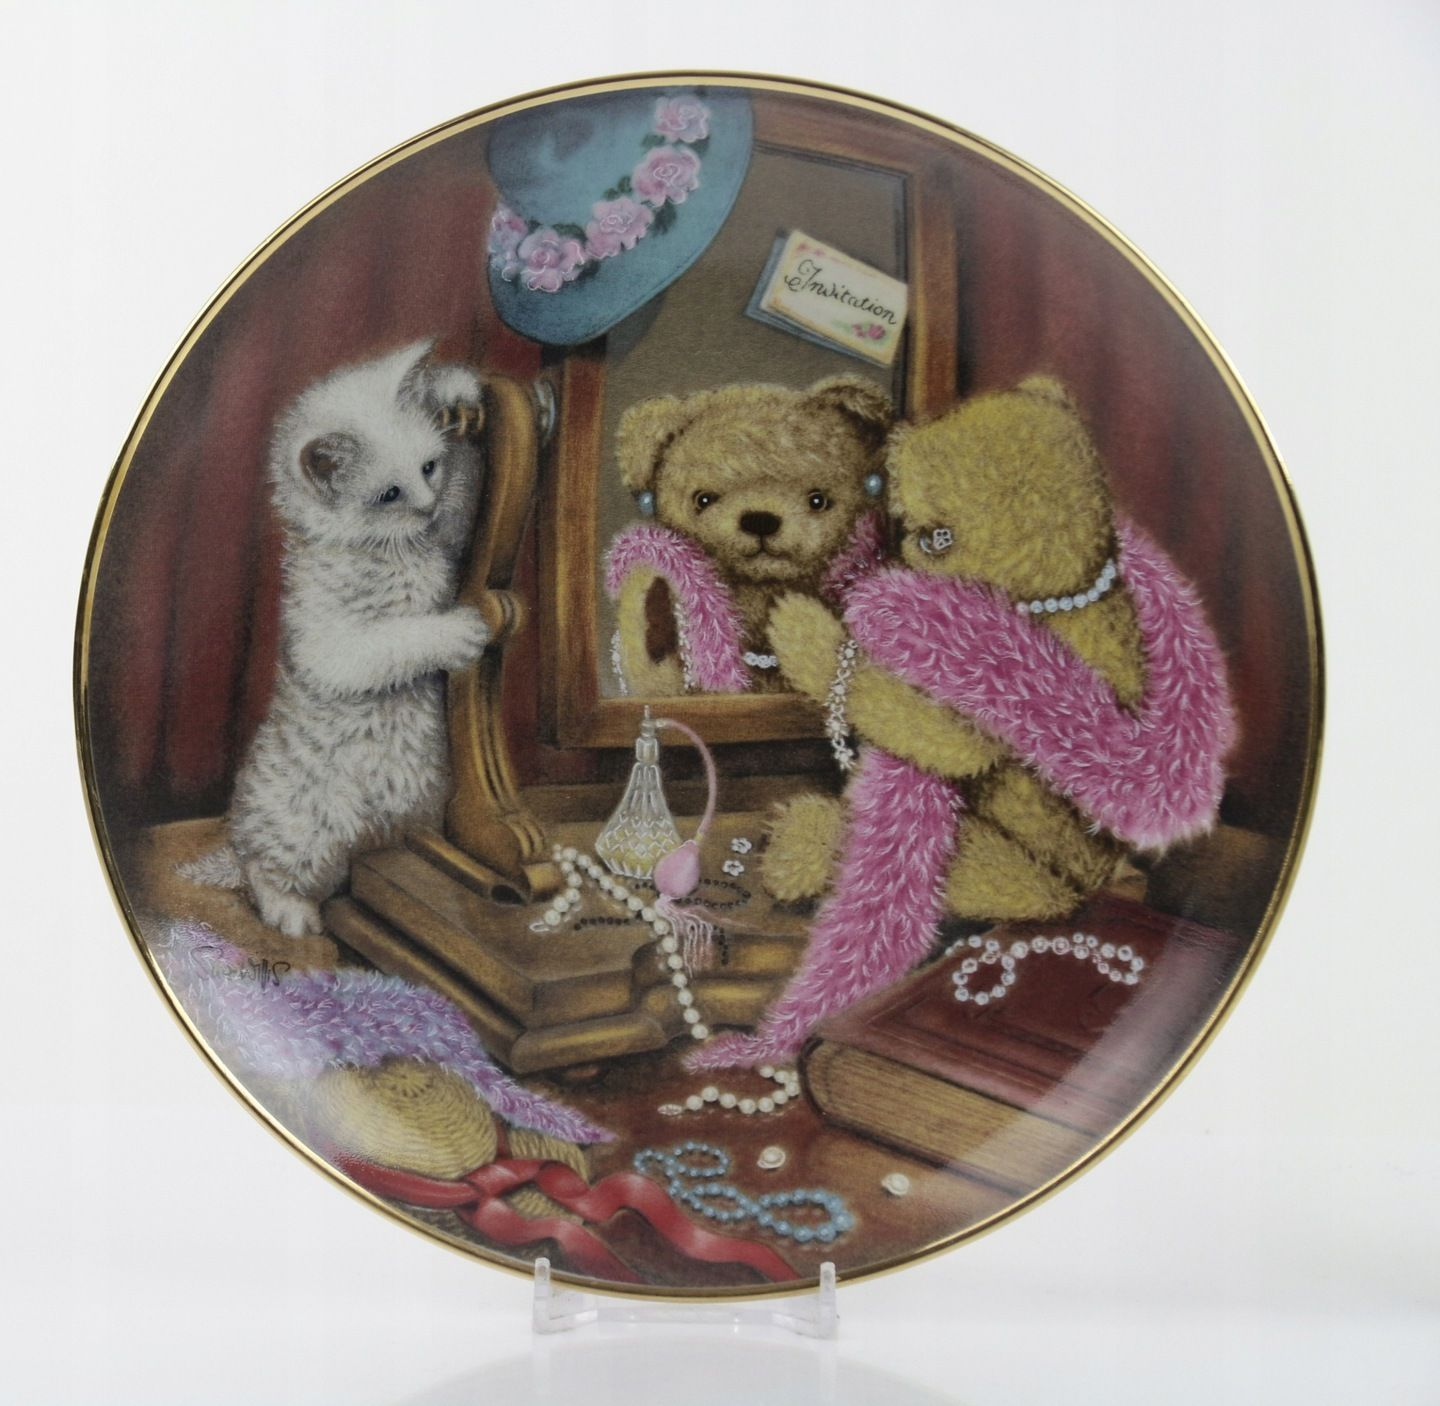 Pchli Targ Talerz Misie Franklin 7975611620 Allegro Pl Vintage Teddy Bears Teddy Bear Vintage Wall Decor